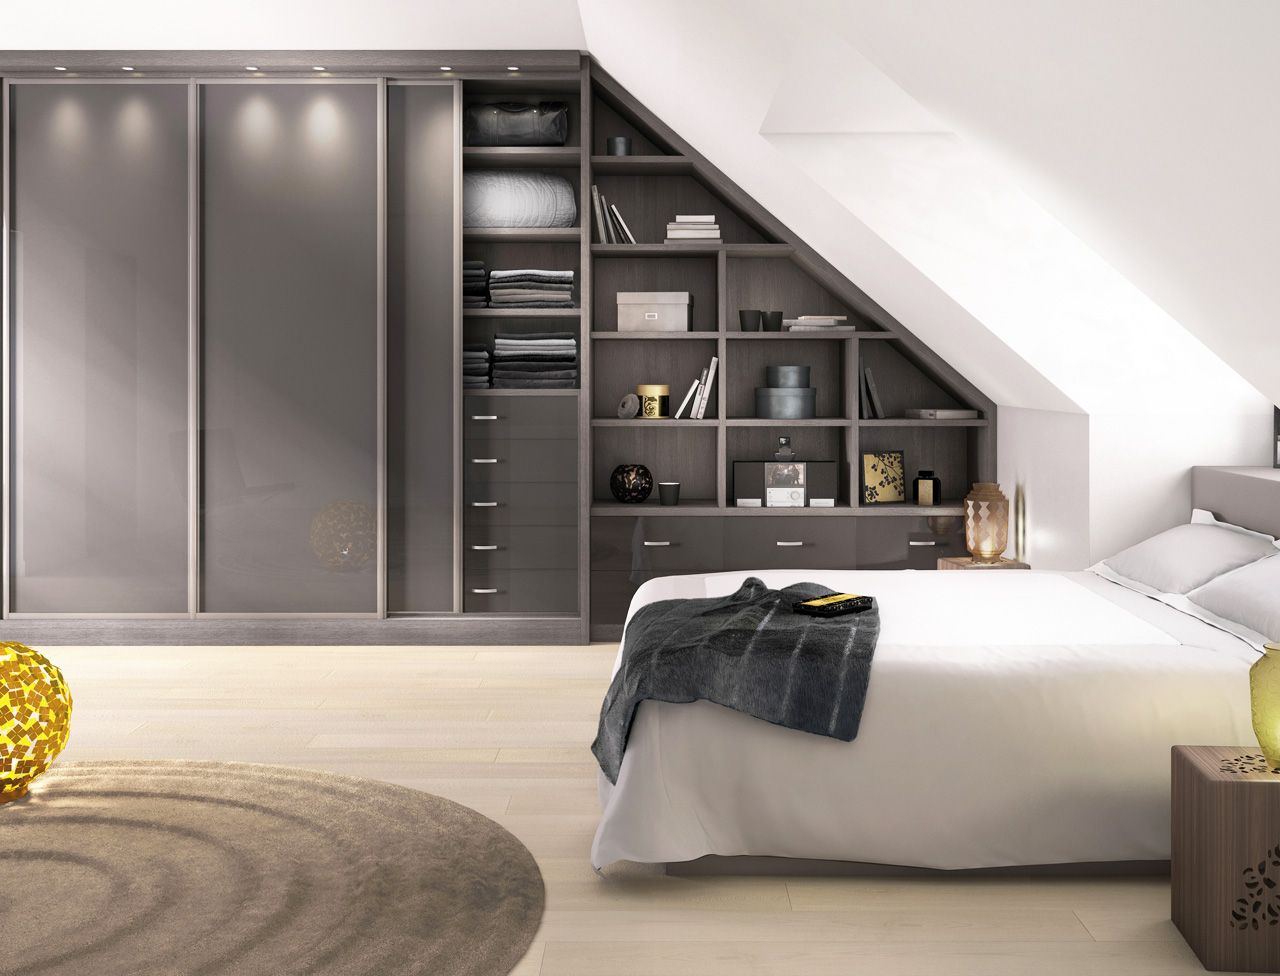 etag res et placards coulissants sur mesure sous les combles combles pinterest placard. Black Bedroom Furniture Sets. Home Design Ideas